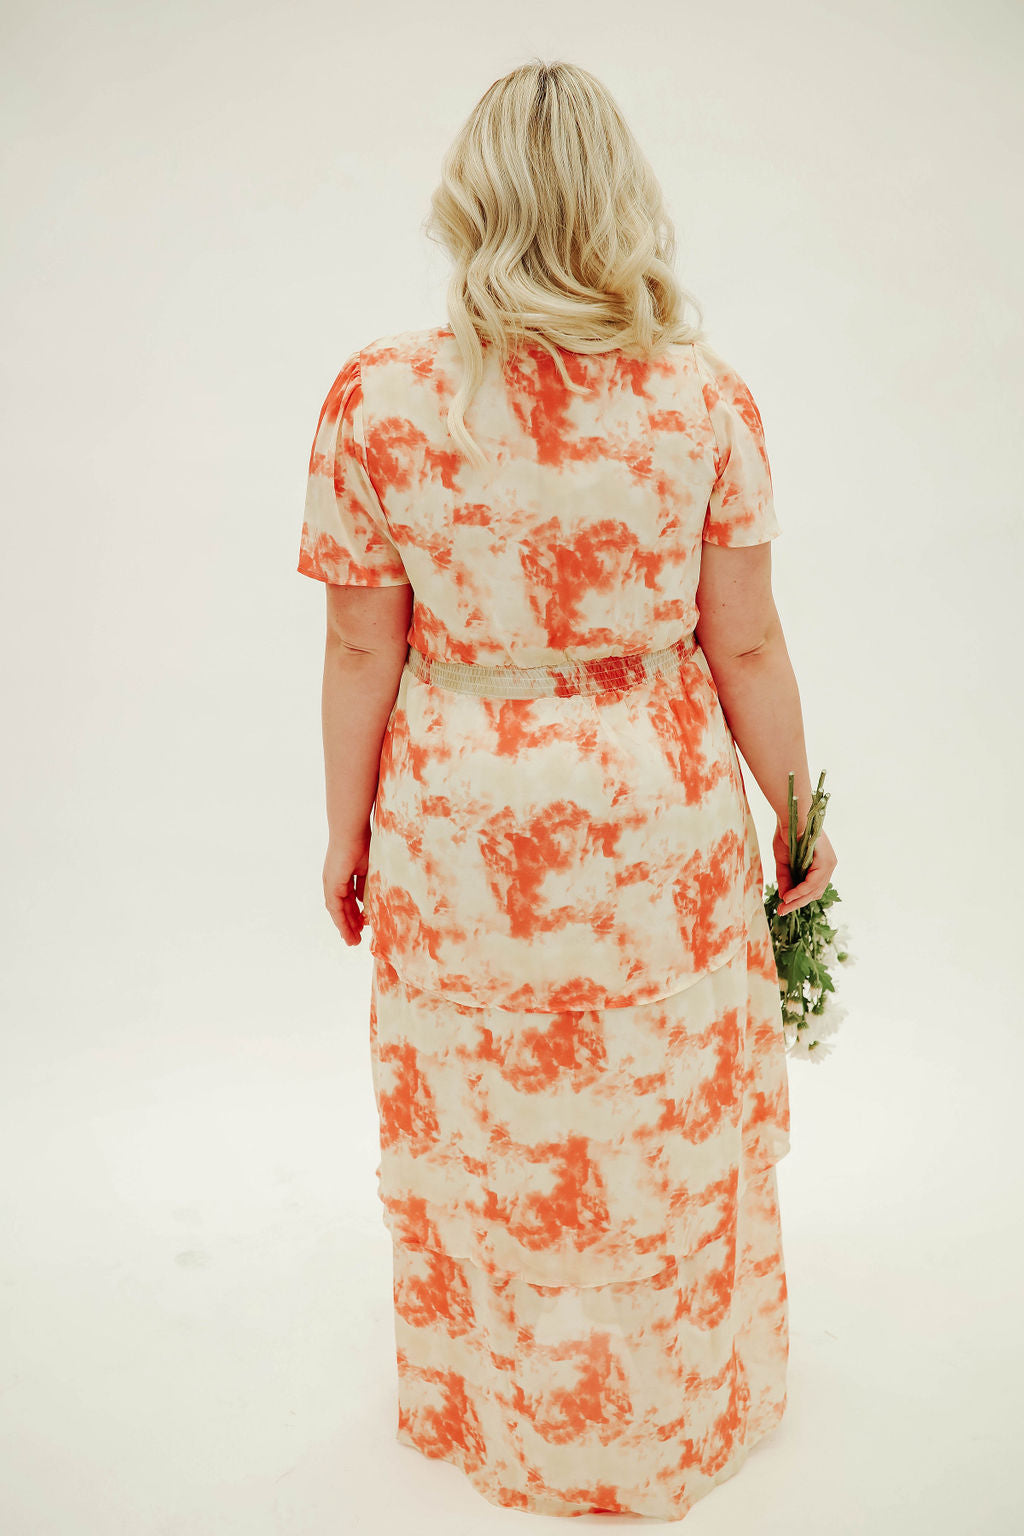 THE CAITLYN DRESS IN CORAL